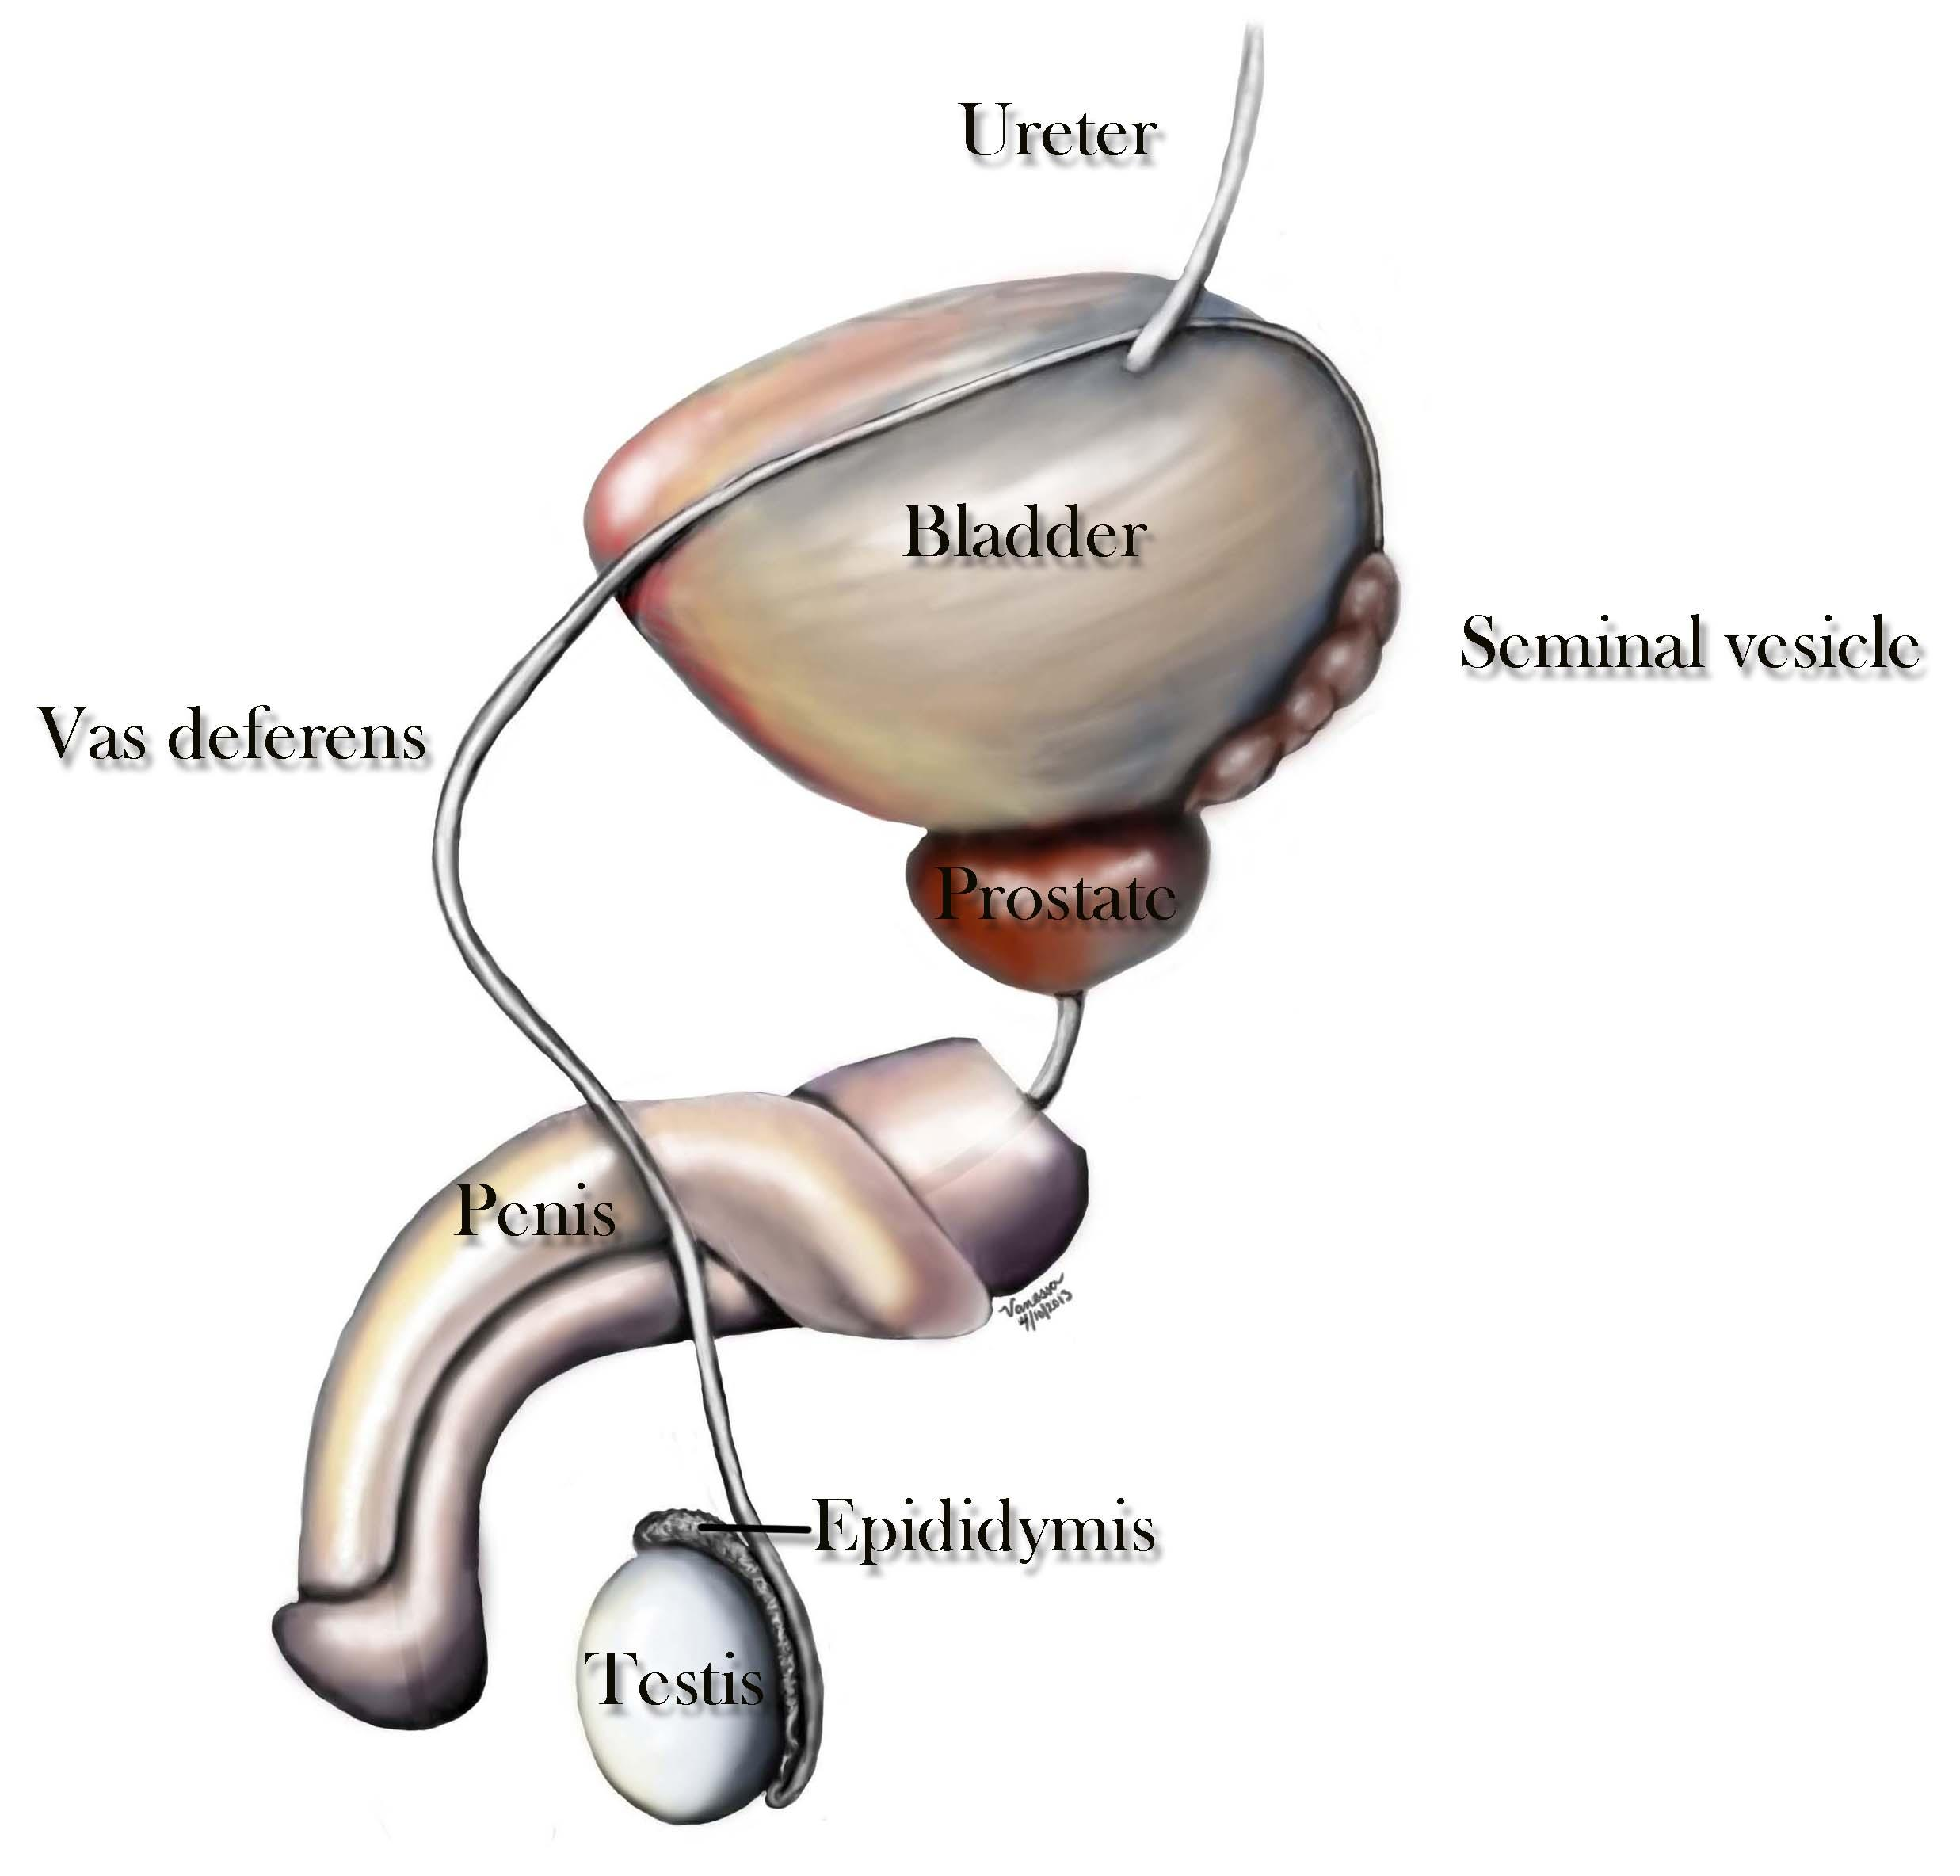 vas deferens & ejaculatory ducts | center for male reproductive, Human Body